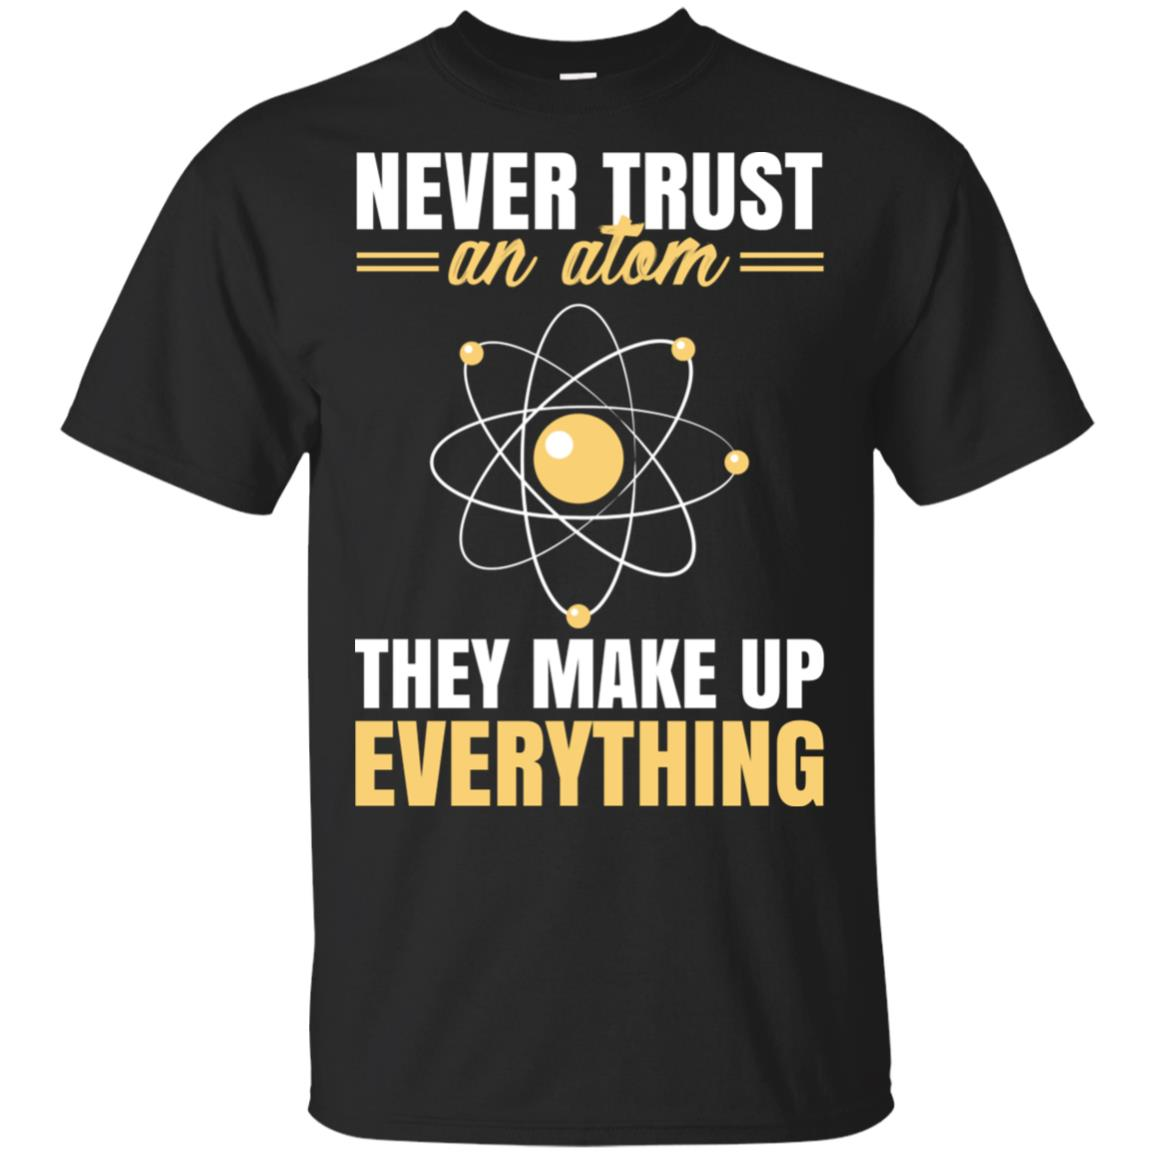 Never Trust An Atom They Make Up Everything Funny Gift Unisex Short Sleeve